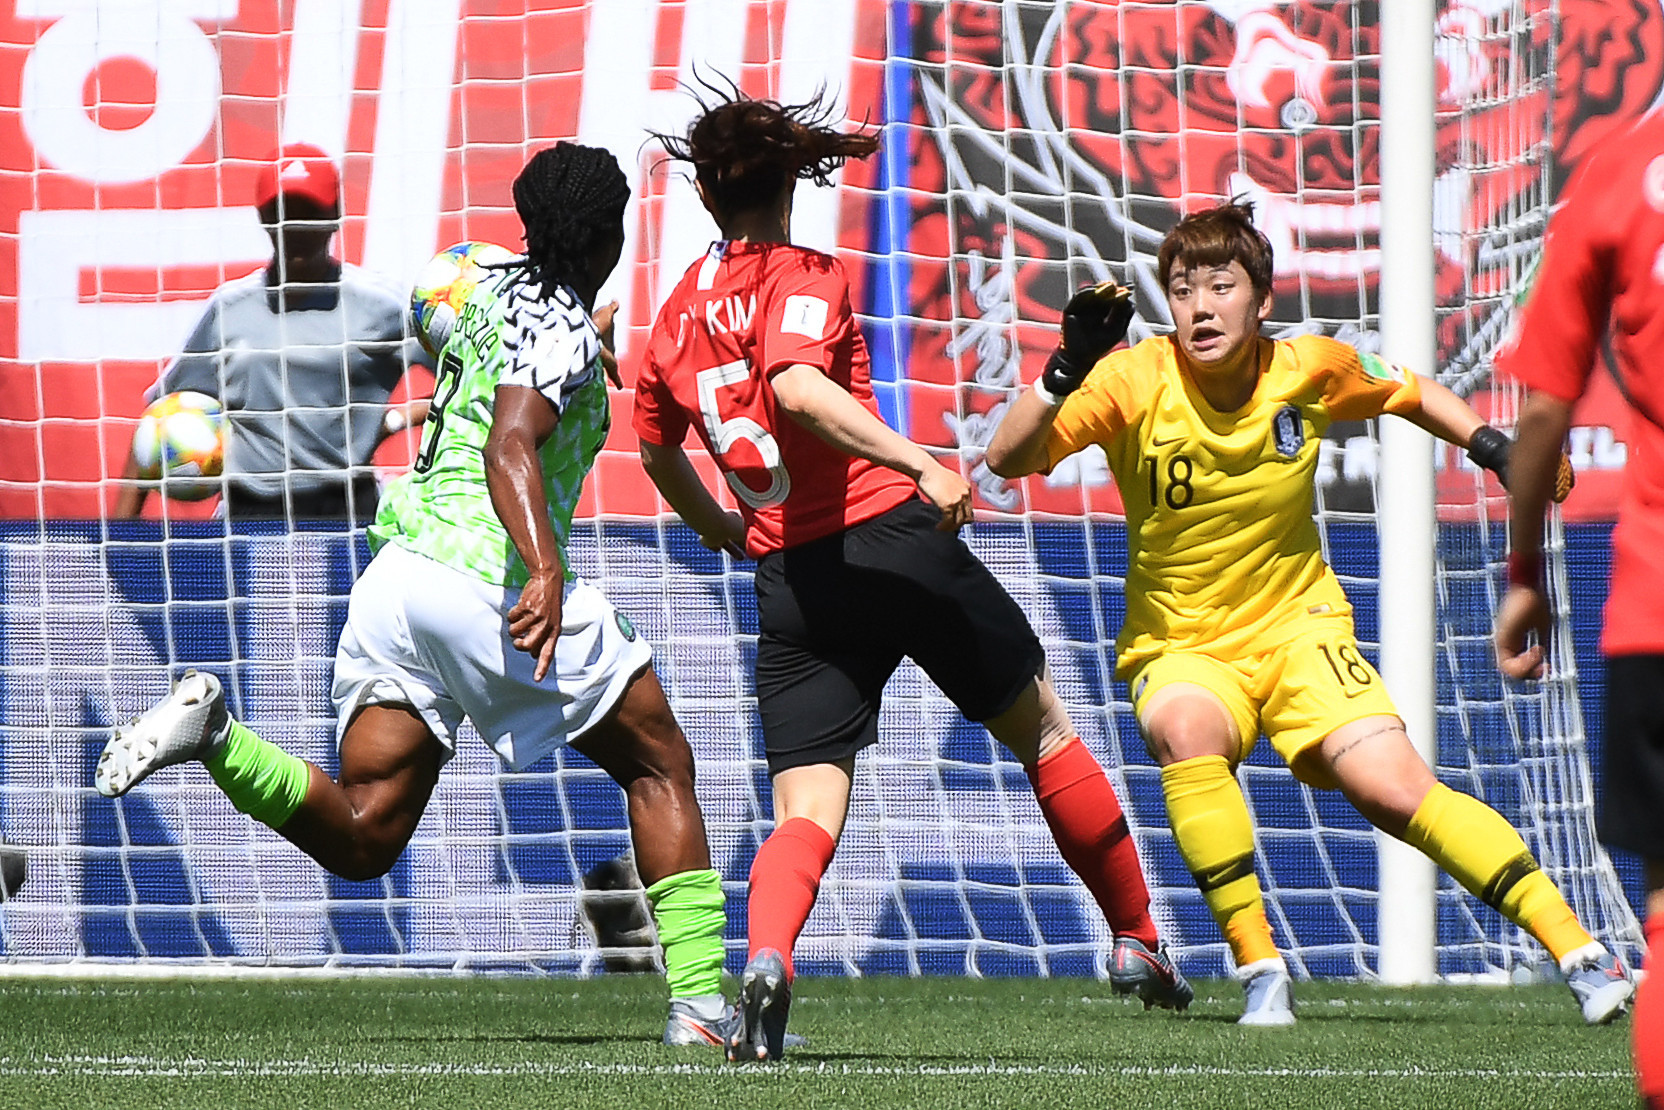 In a clash between Nigeria and South Korea, Kim Do-yeon scored an own goal to put Nigeria ahead ©Getty Images